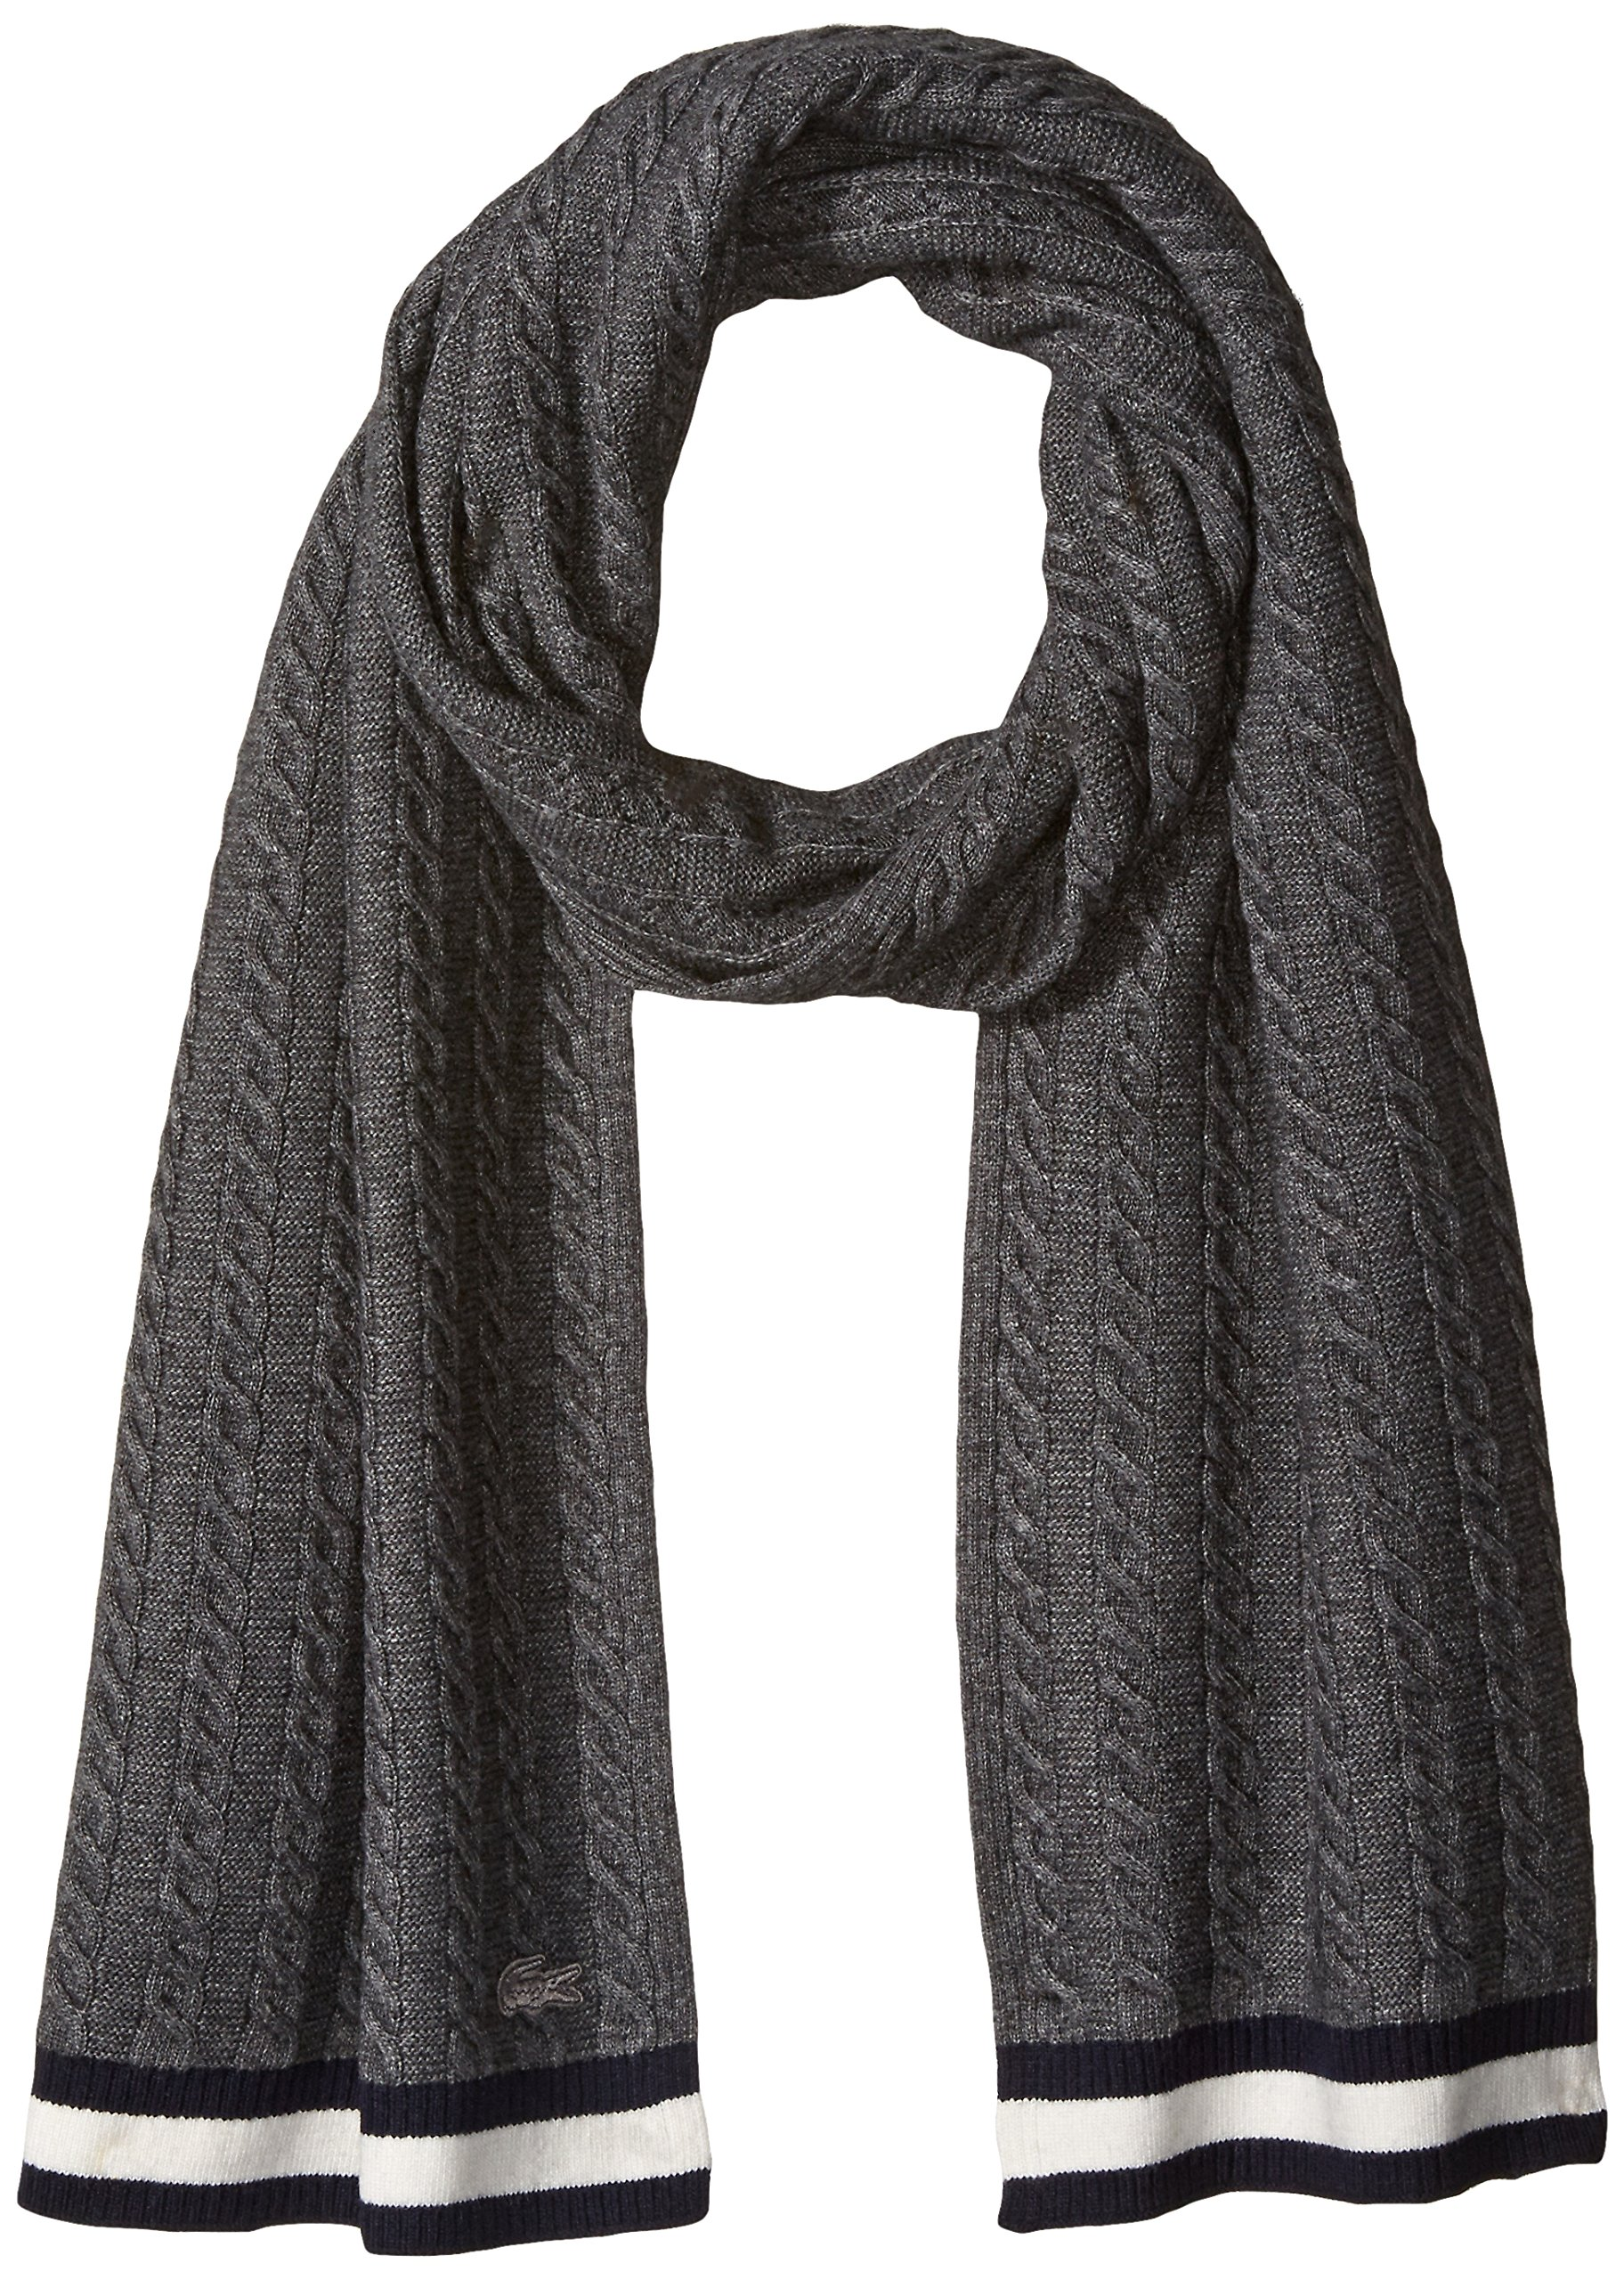 Lacoste Women's Cable Knit Stitch Knitted Scarf, Asphalt Chine/Flour/Navy Blue, One Size